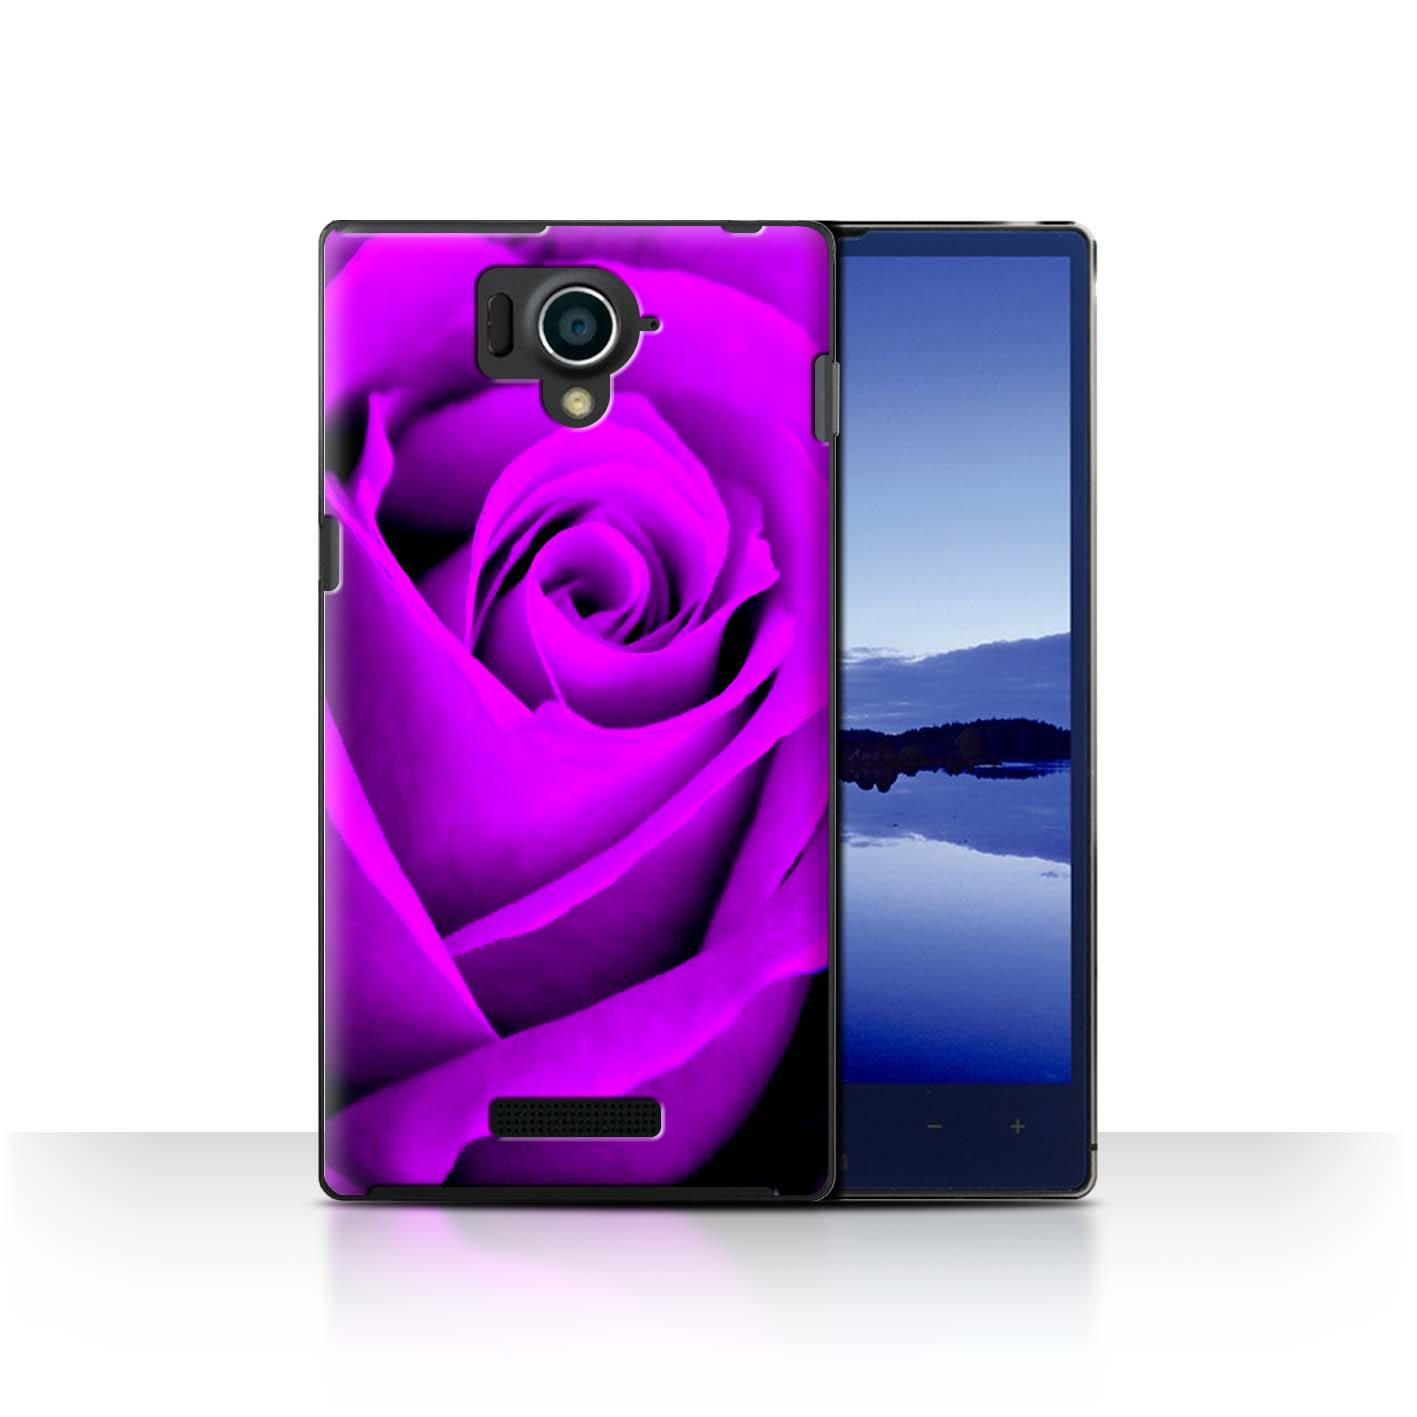 STUFF4-Back-Case-Cover-Skin-for-Sharp-Aquos-Xx-304SH-Rose